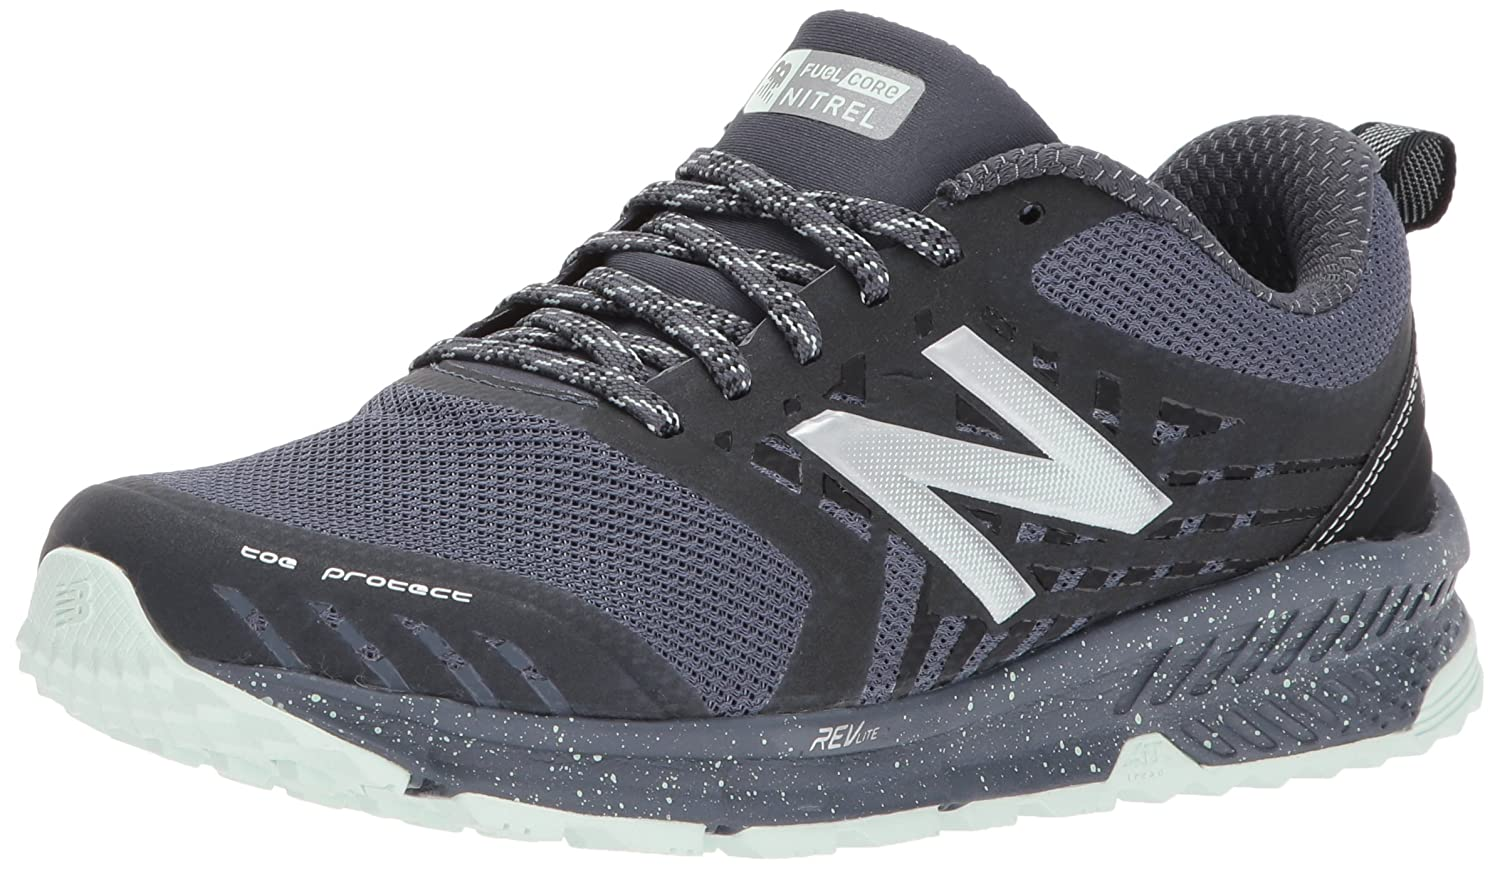 New Balance Women's Nitrel v1 FuelCore Trail Running Shoe B01MS13D8B 5.5 B(M) US|Grey/Black